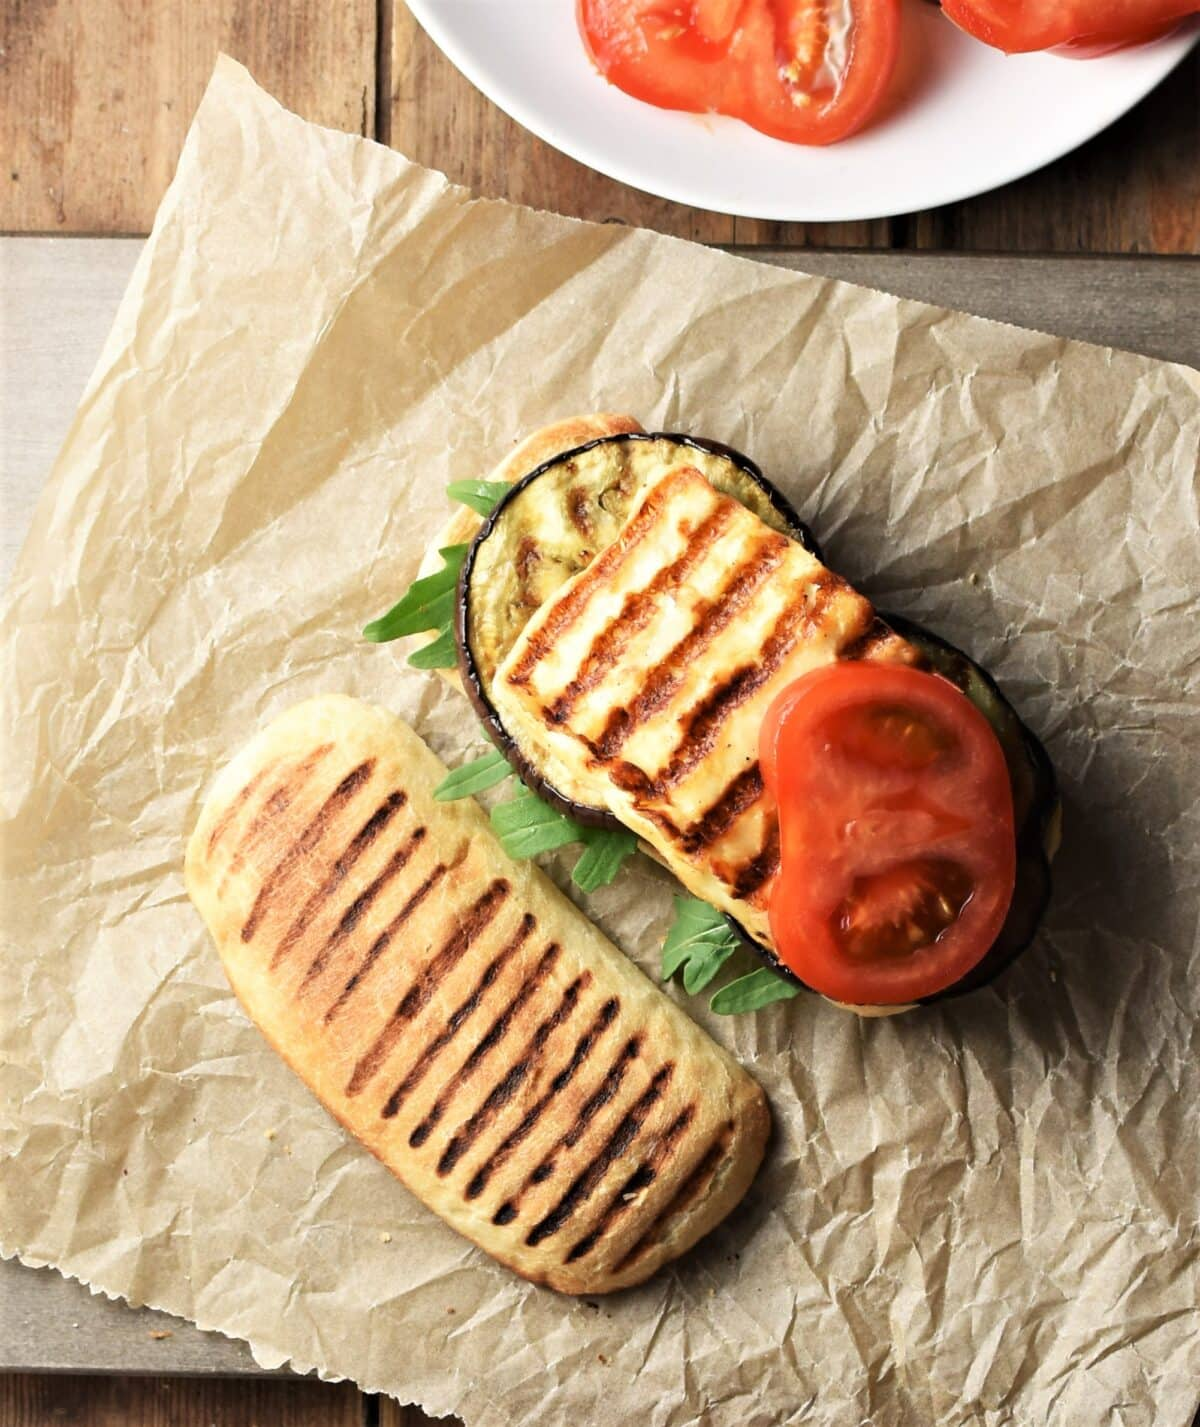 Top down view of open grilled eggplant and halloumi sandwich with tomato on top of paper.